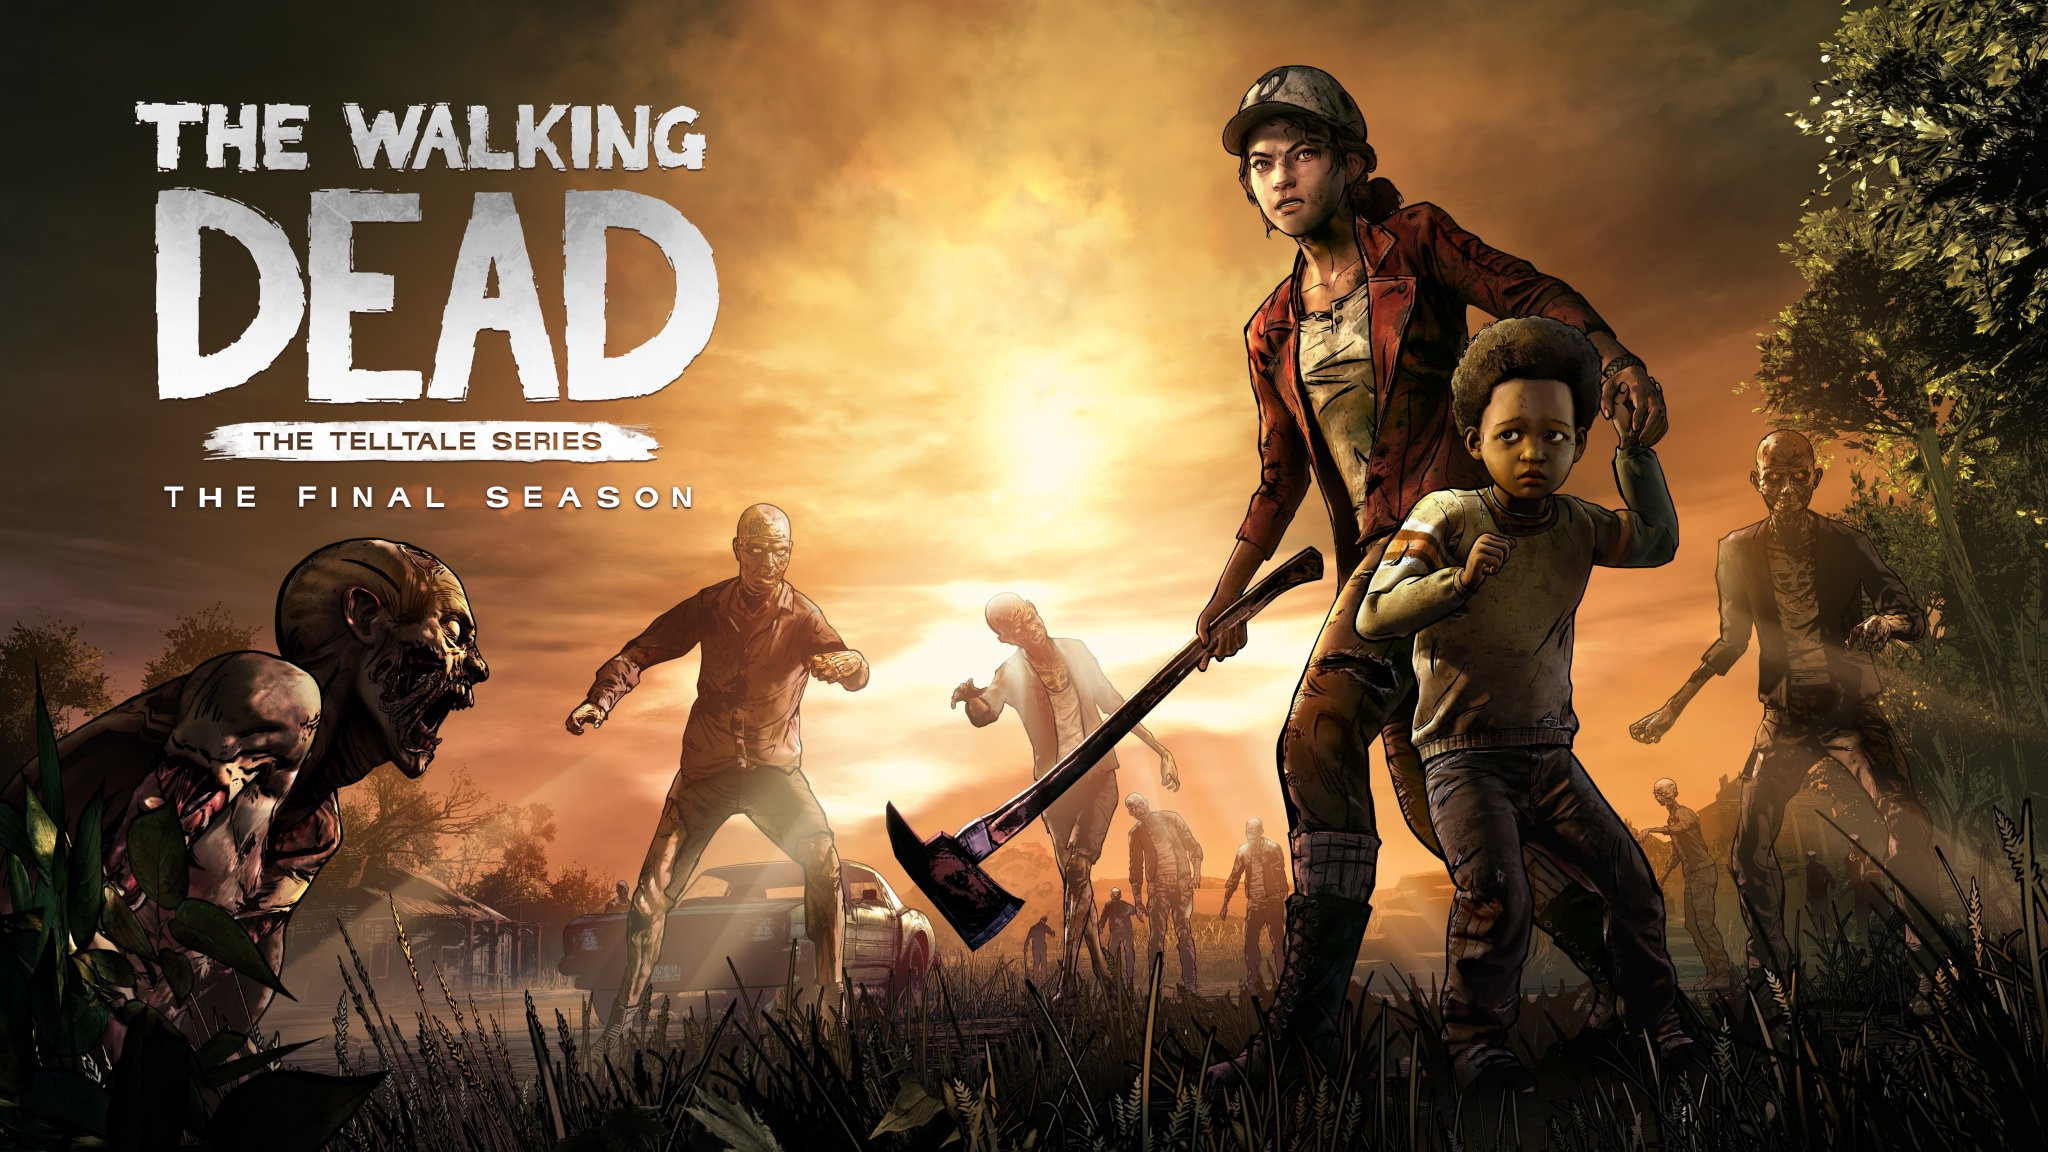 a girl holds an axe and protects a younger child against zombies